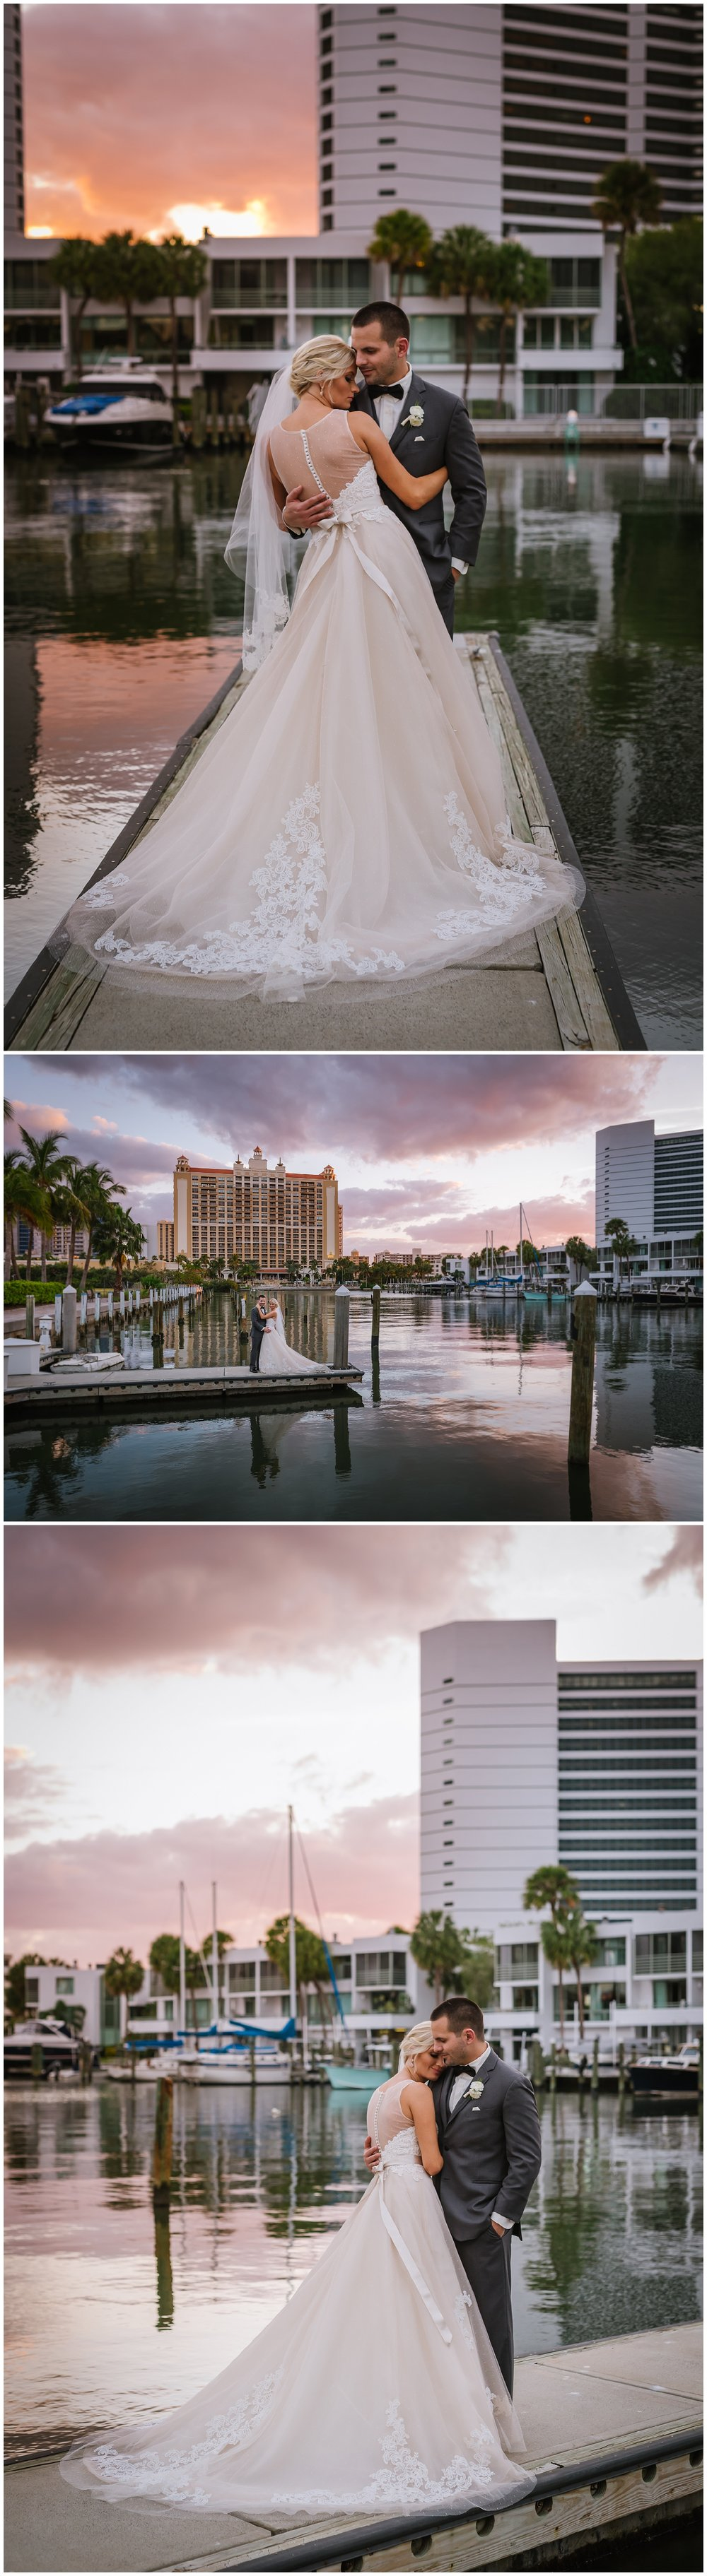 Sarasota-wedding-photographer-hyatt-regency-blush_0052.jpg